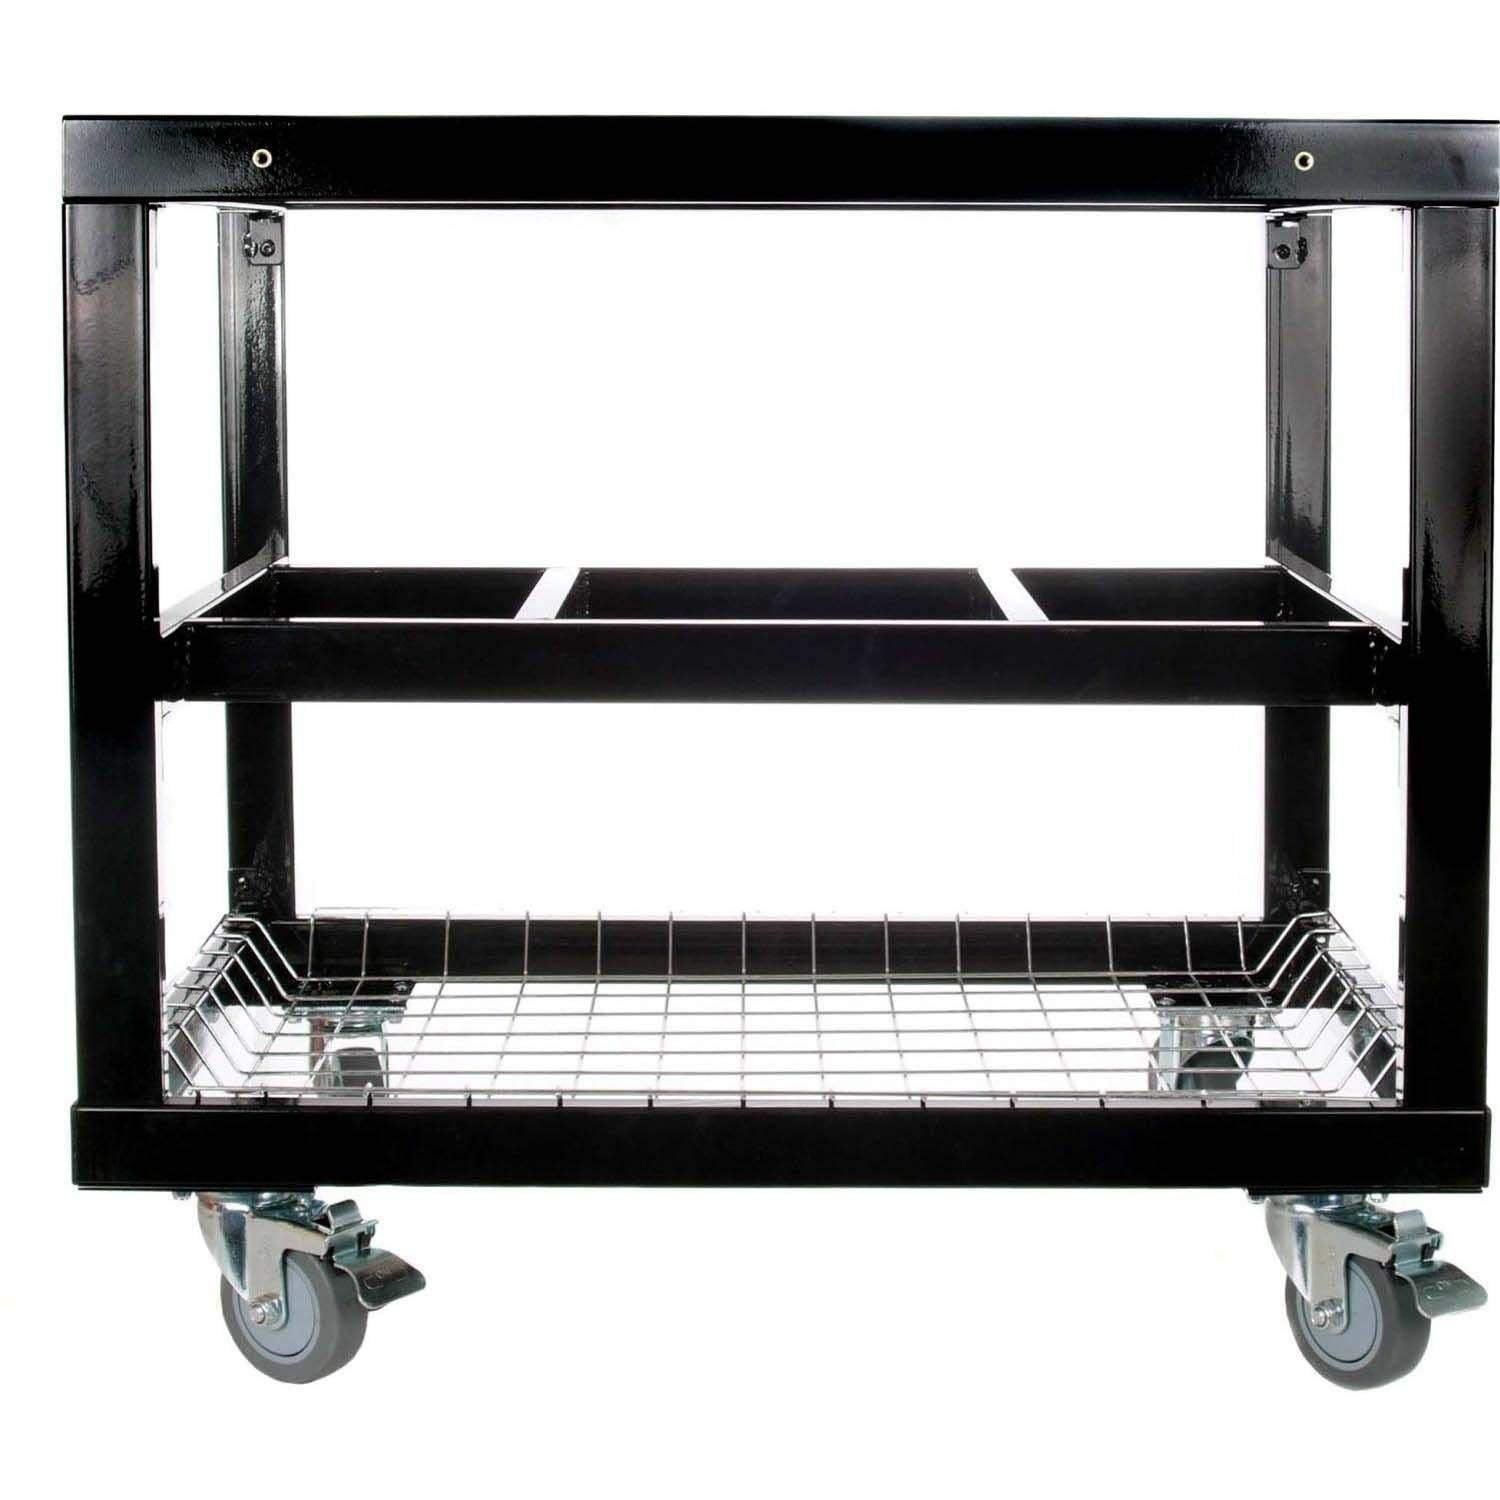 Primo 368 Grill Cart, Black by Primo